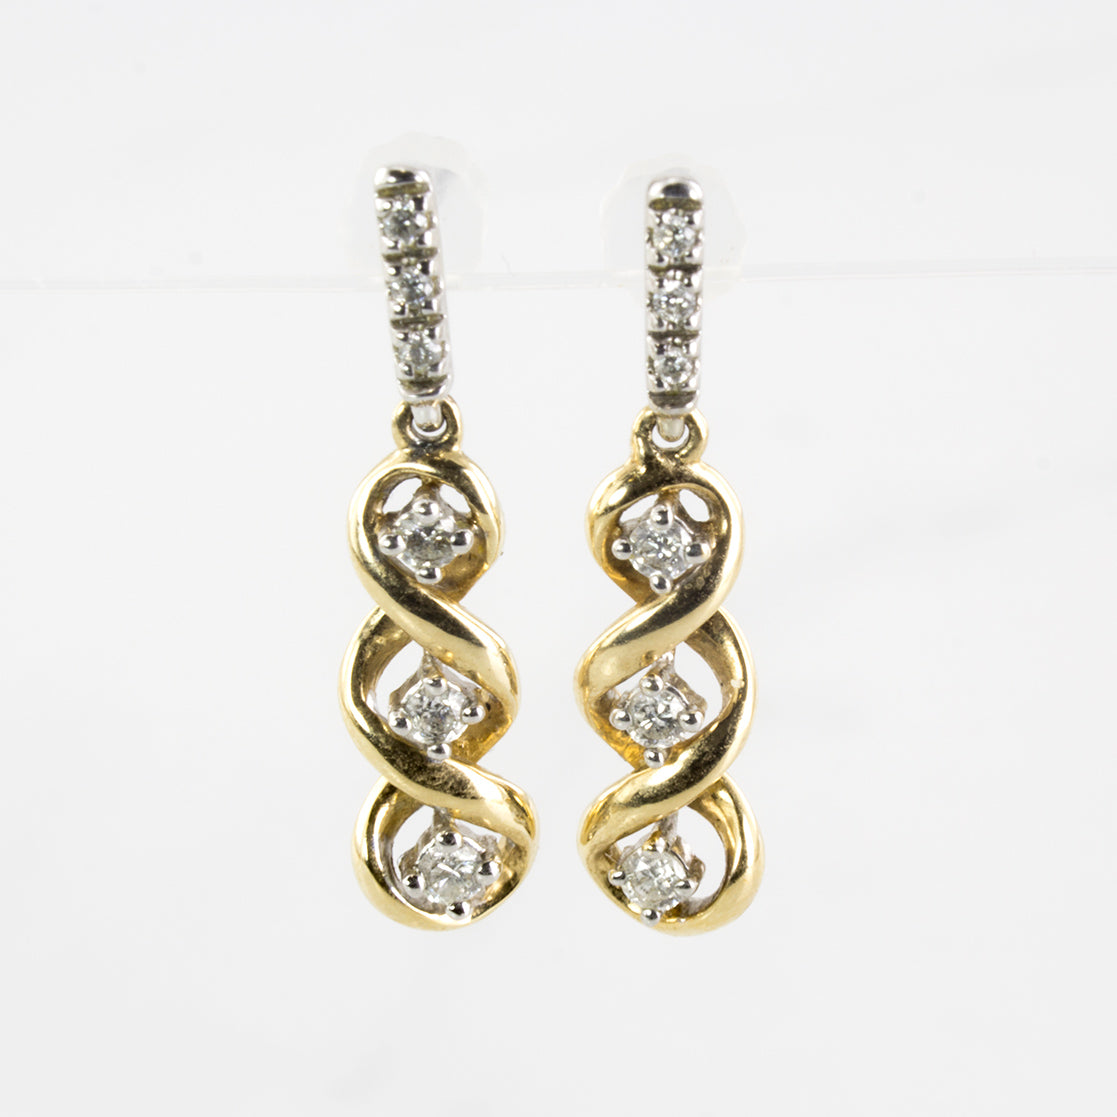 Spiral Diamond Drop Stud Earrings | 0.16 ctw |